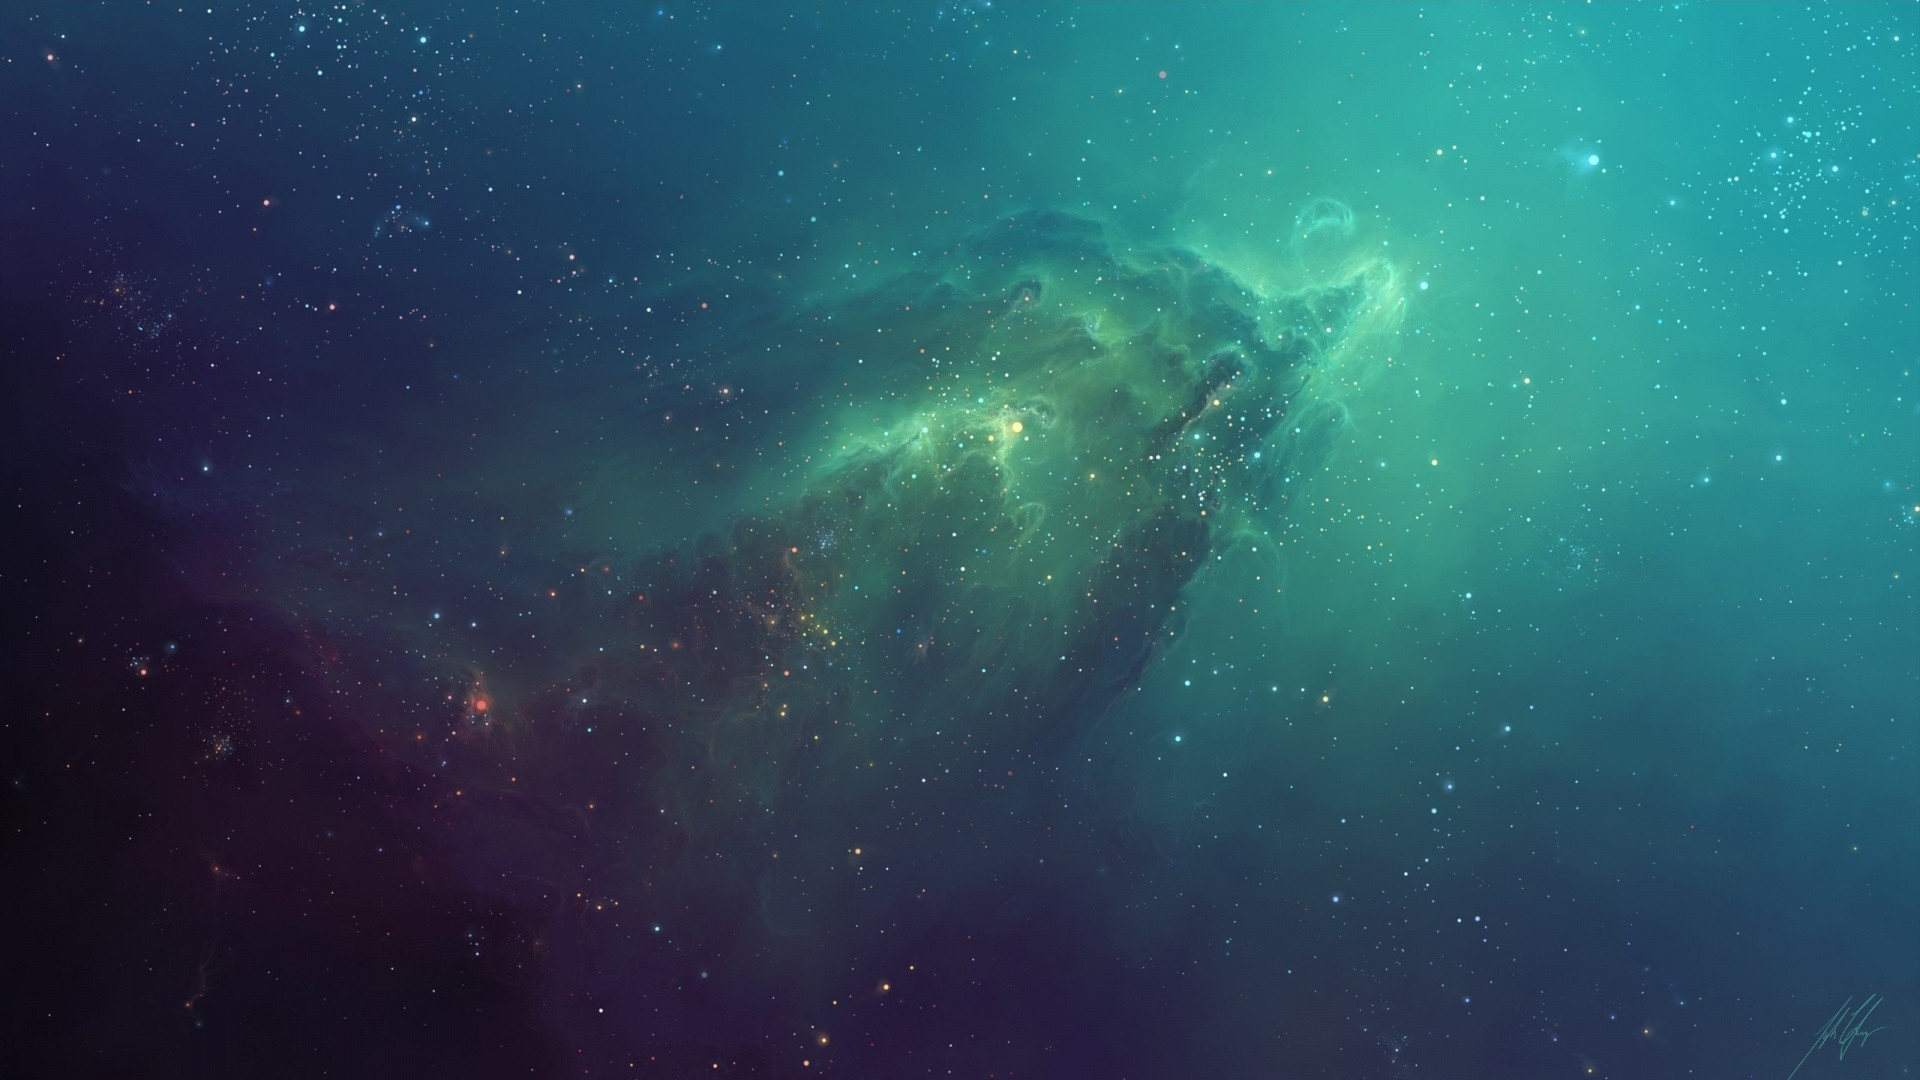 If you like nebula wallpapers similar to this, here is one I've been using on my MBP: 1920x1080